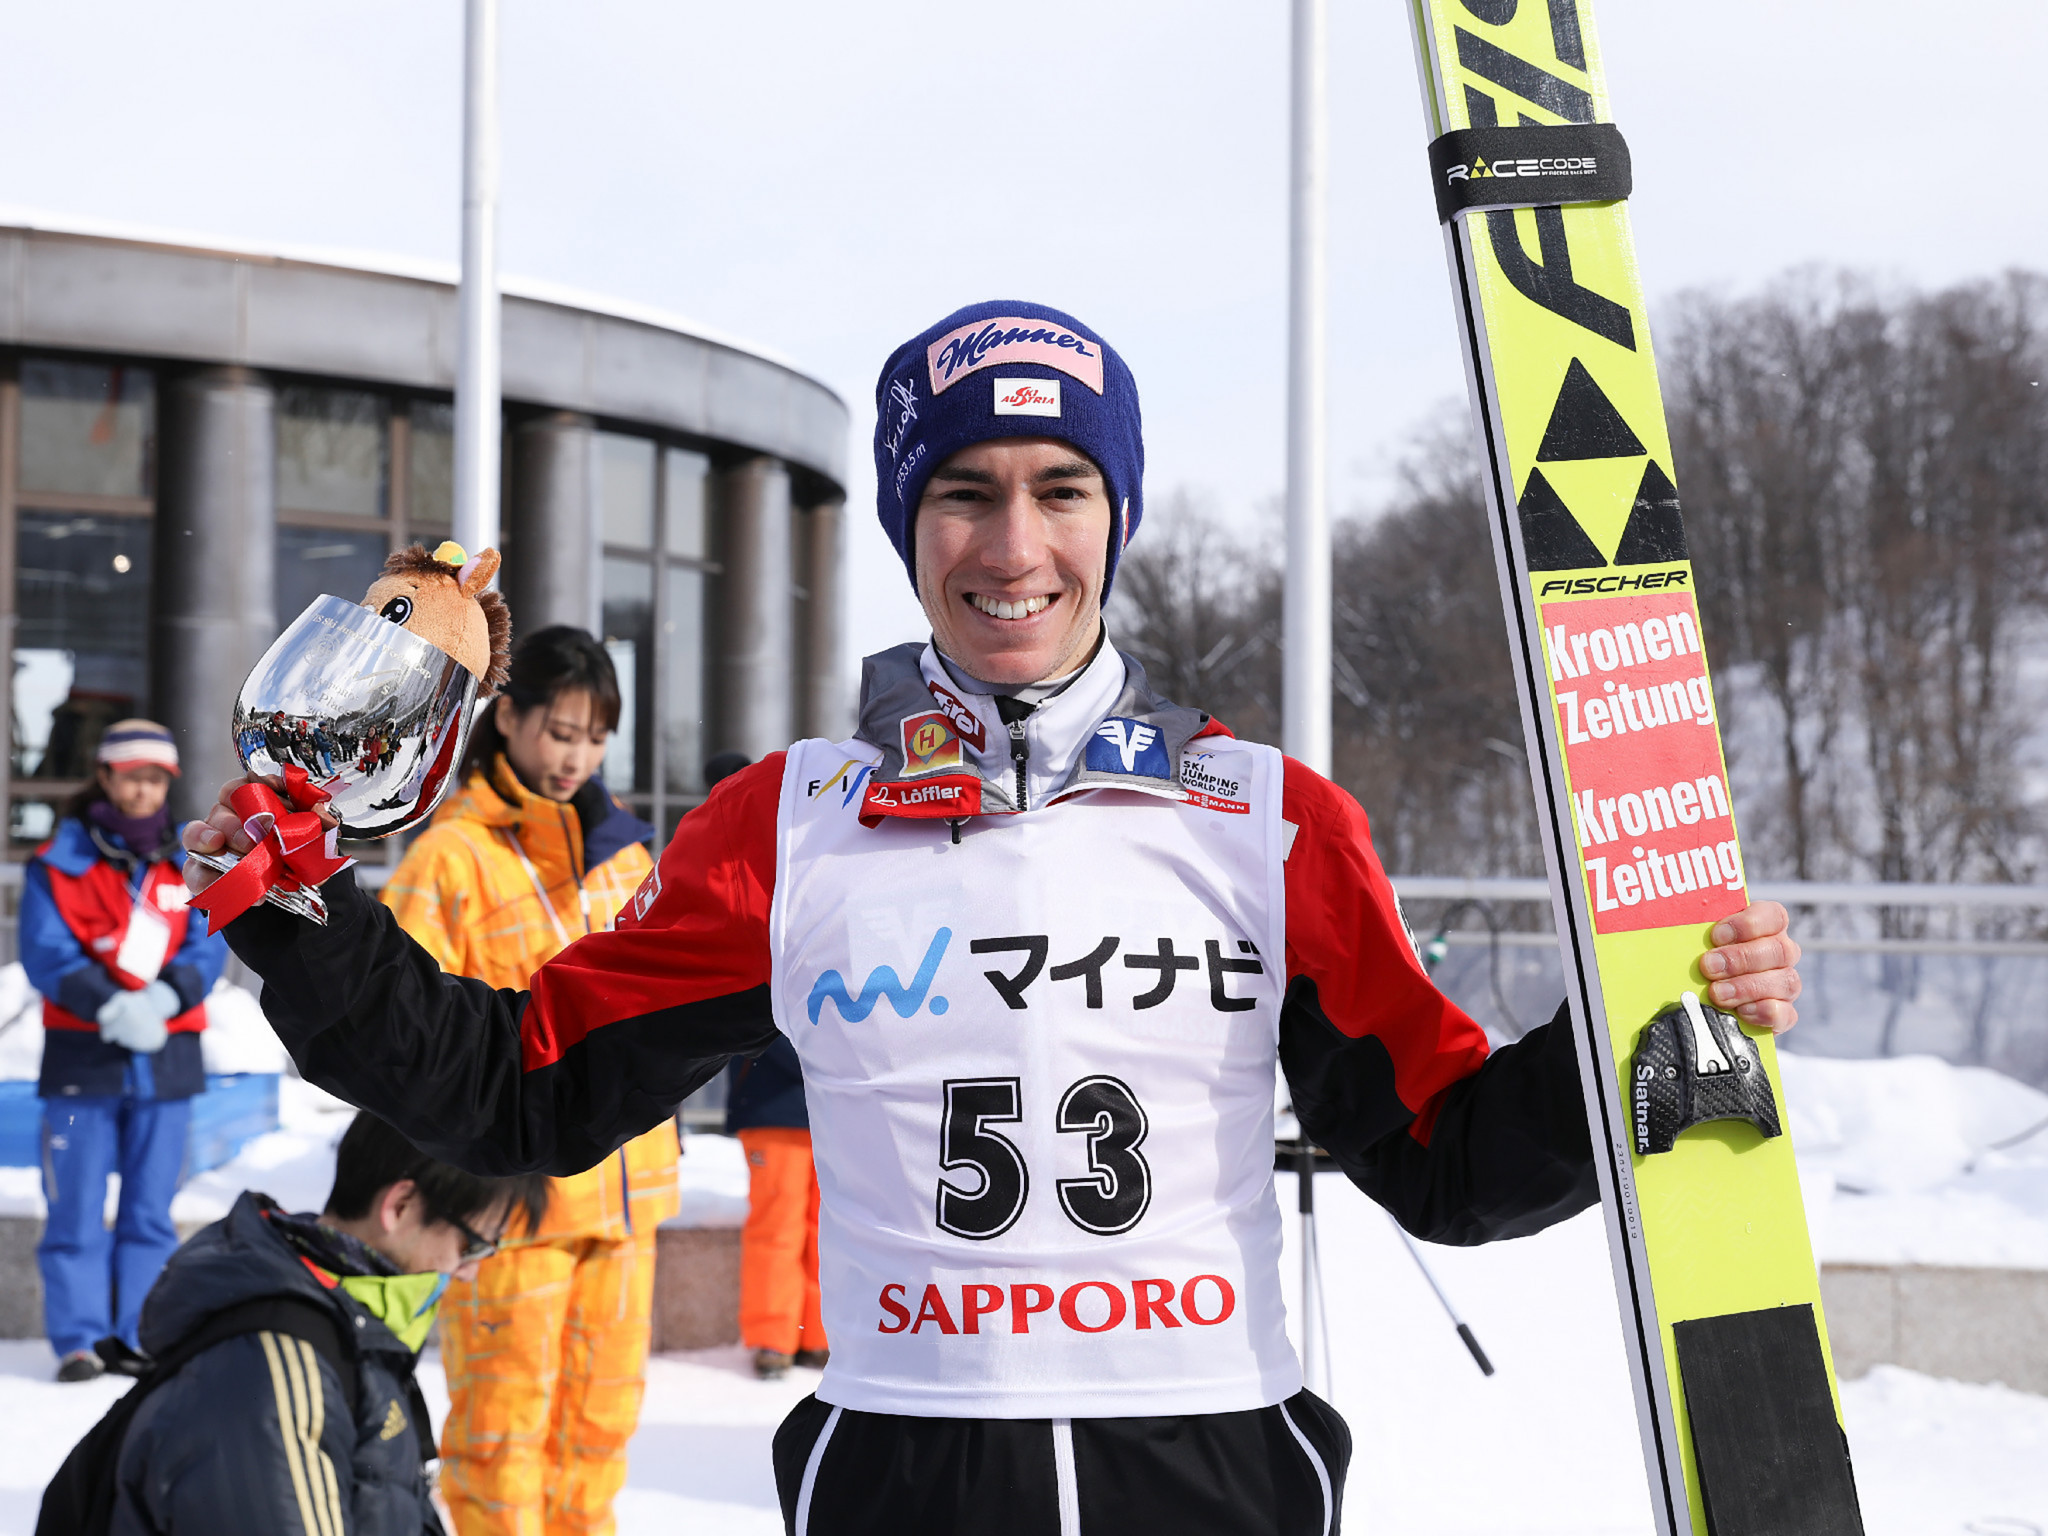 Kraft wins third Ski Jumping World Cup title in a row in Sapporo